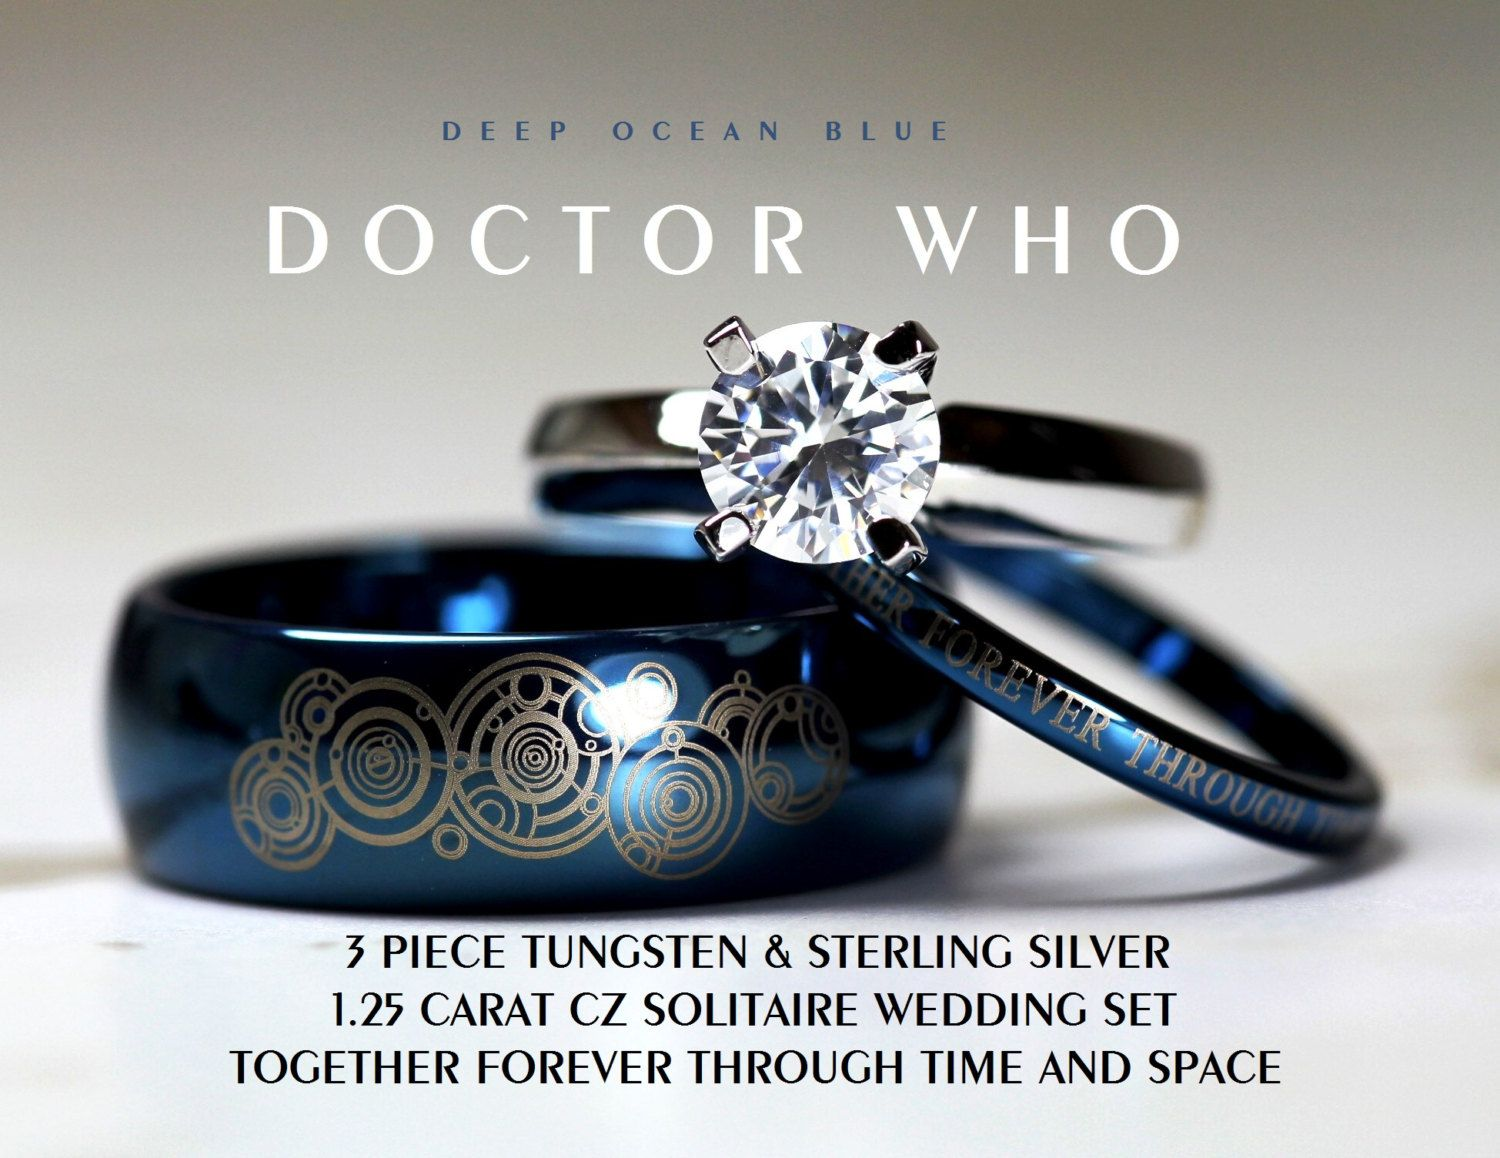 blue doctor who his 8mm tungsten and hers 4mm 925 sterling silver 125 carat solitaire cz wedding ring set custom engraved